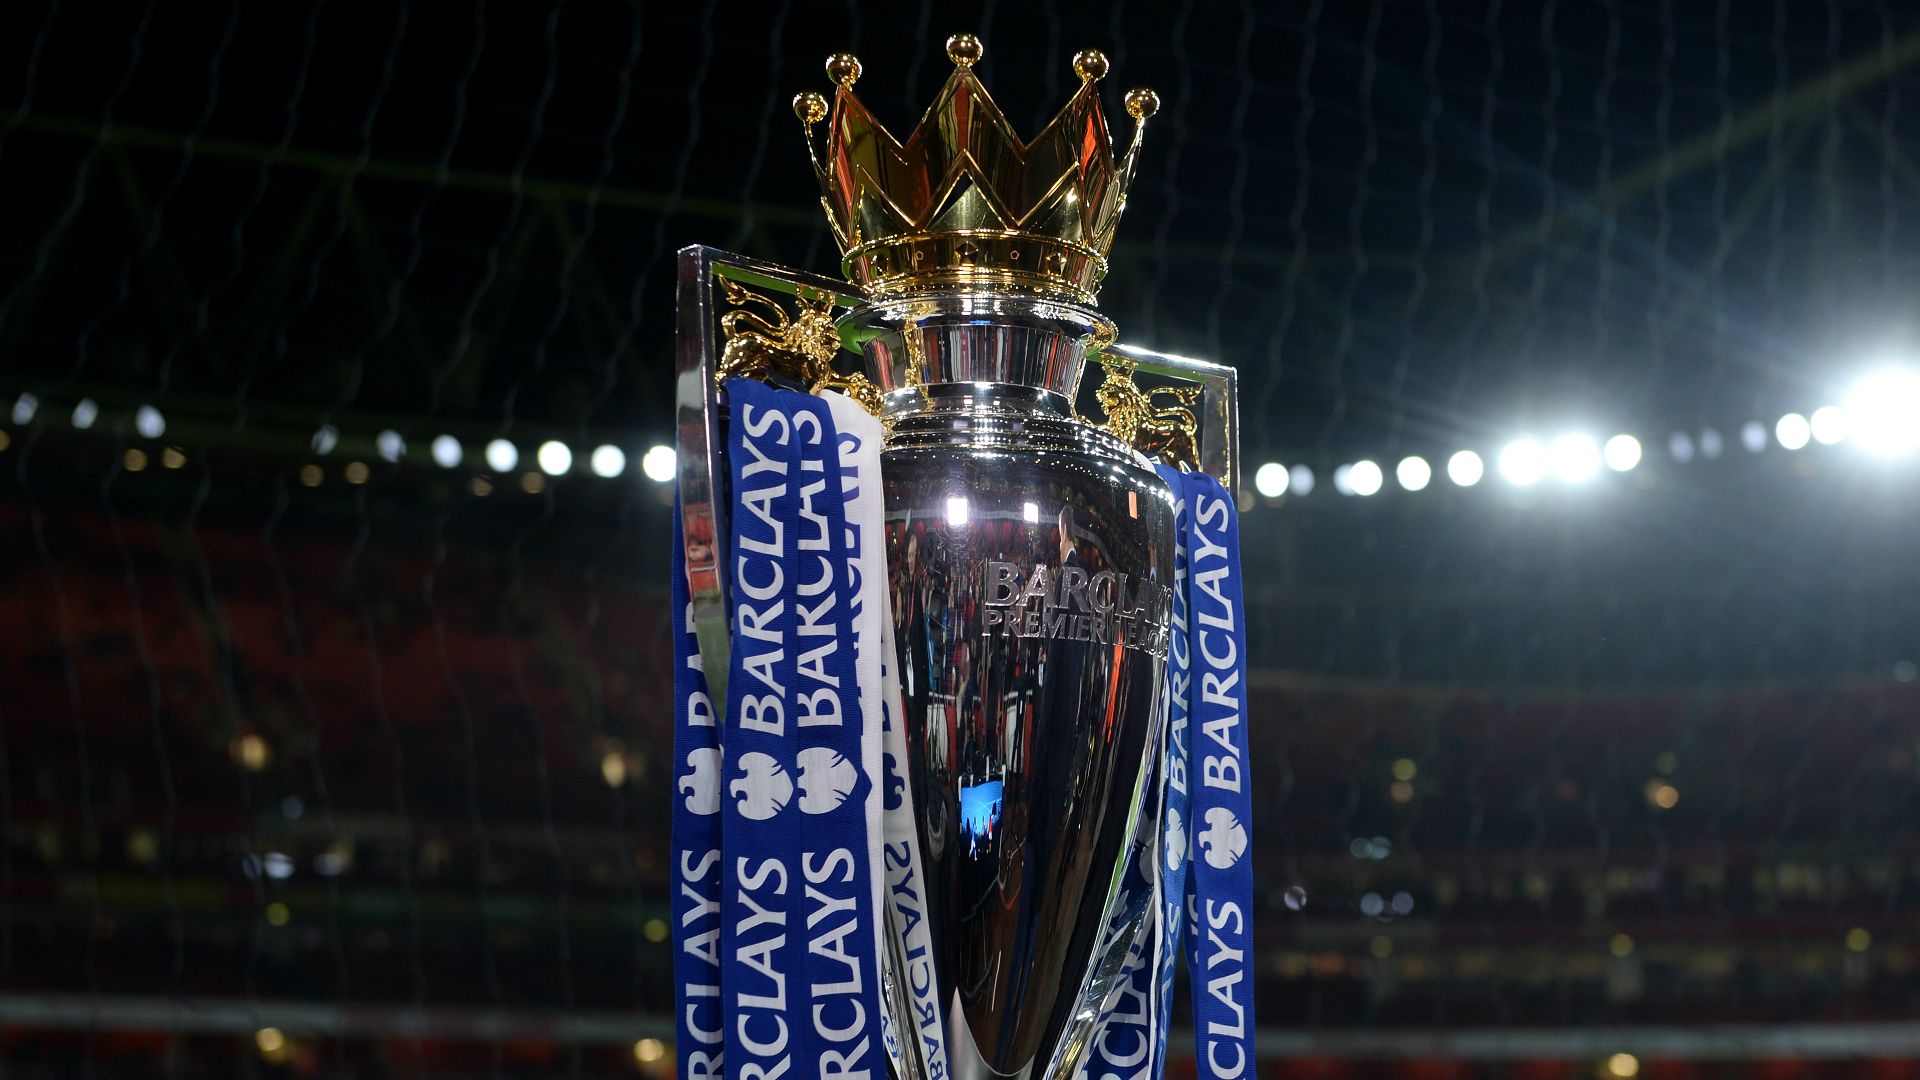 Premier League clubs split on change to overseas TV rights payments